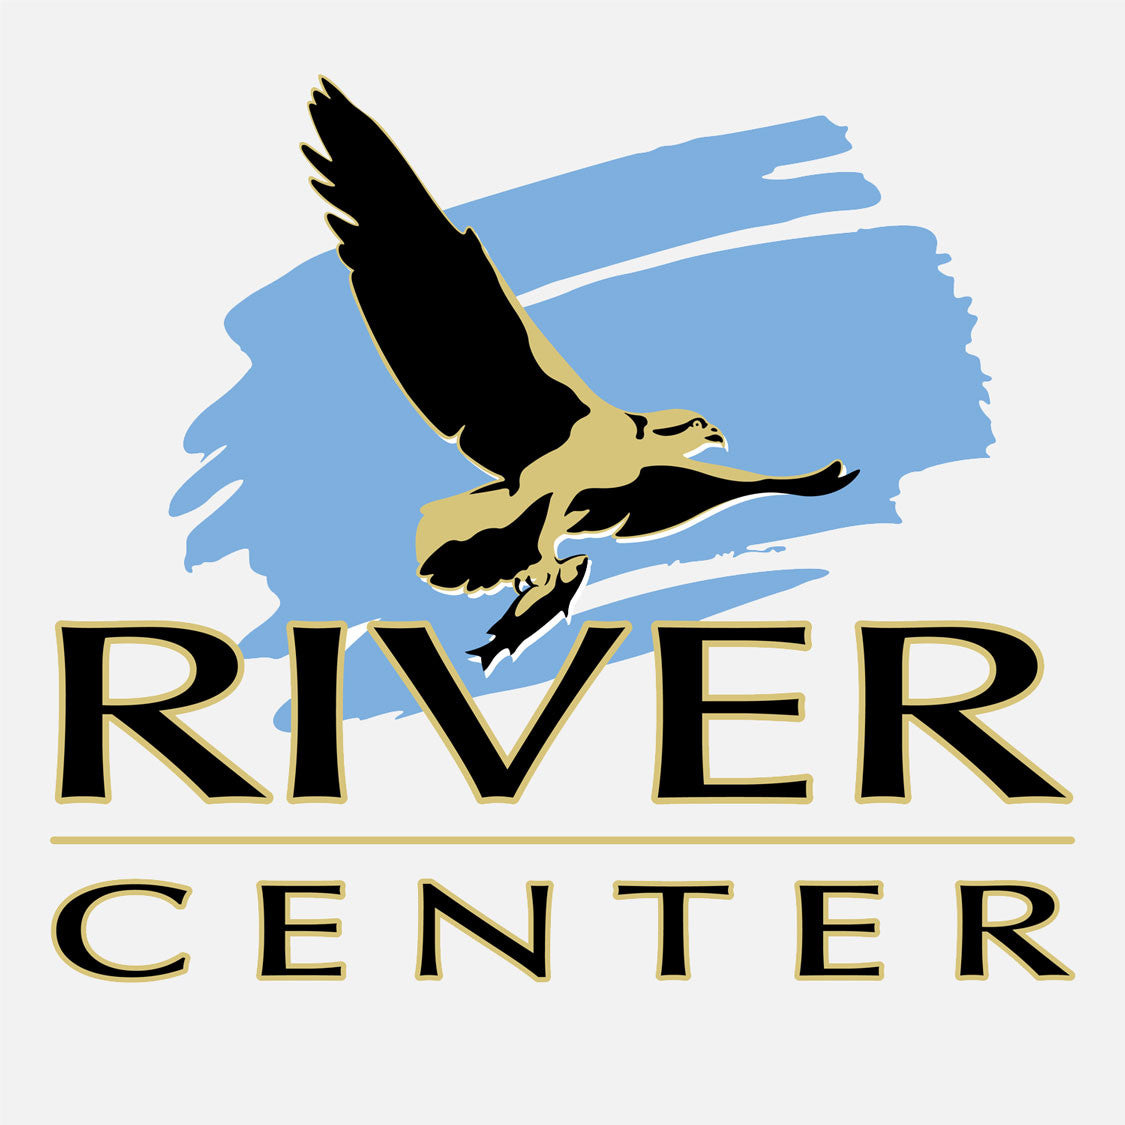 Environmental education center that features live aquatic tanks, interactive exhibits, and a touch tank that represent the Loxahatchee River system from a freshwater cypress swamp to seagrass-dominated estuary to marine ecosystems. The logo is a graphic of an osprey carrying a fish